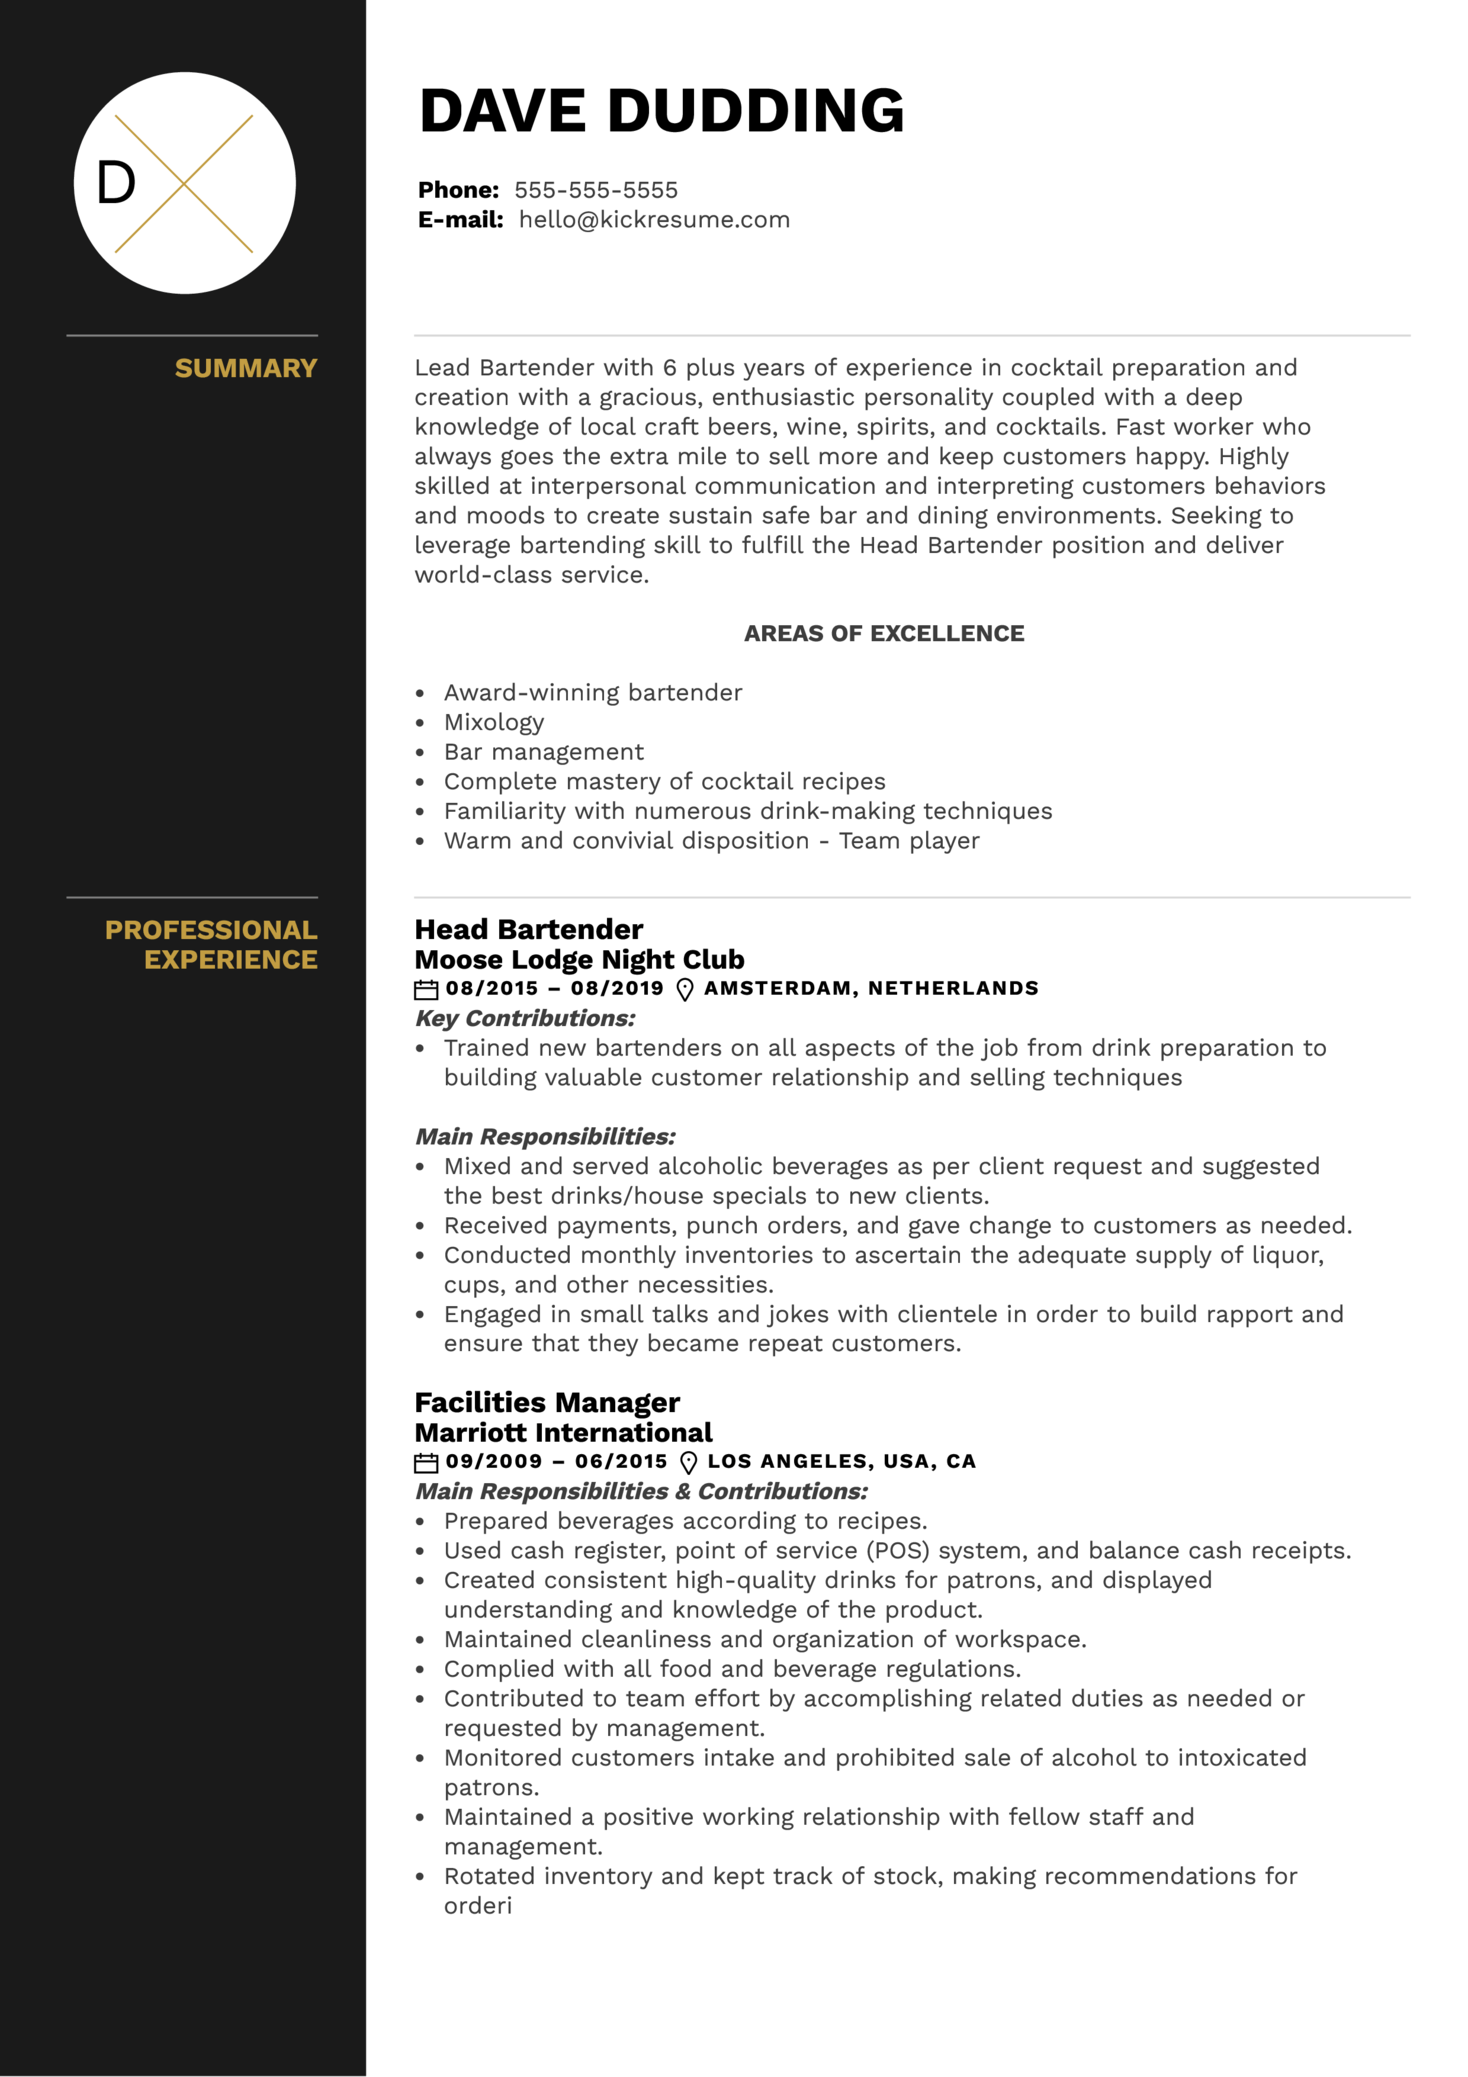 Head Bartender Resume Example